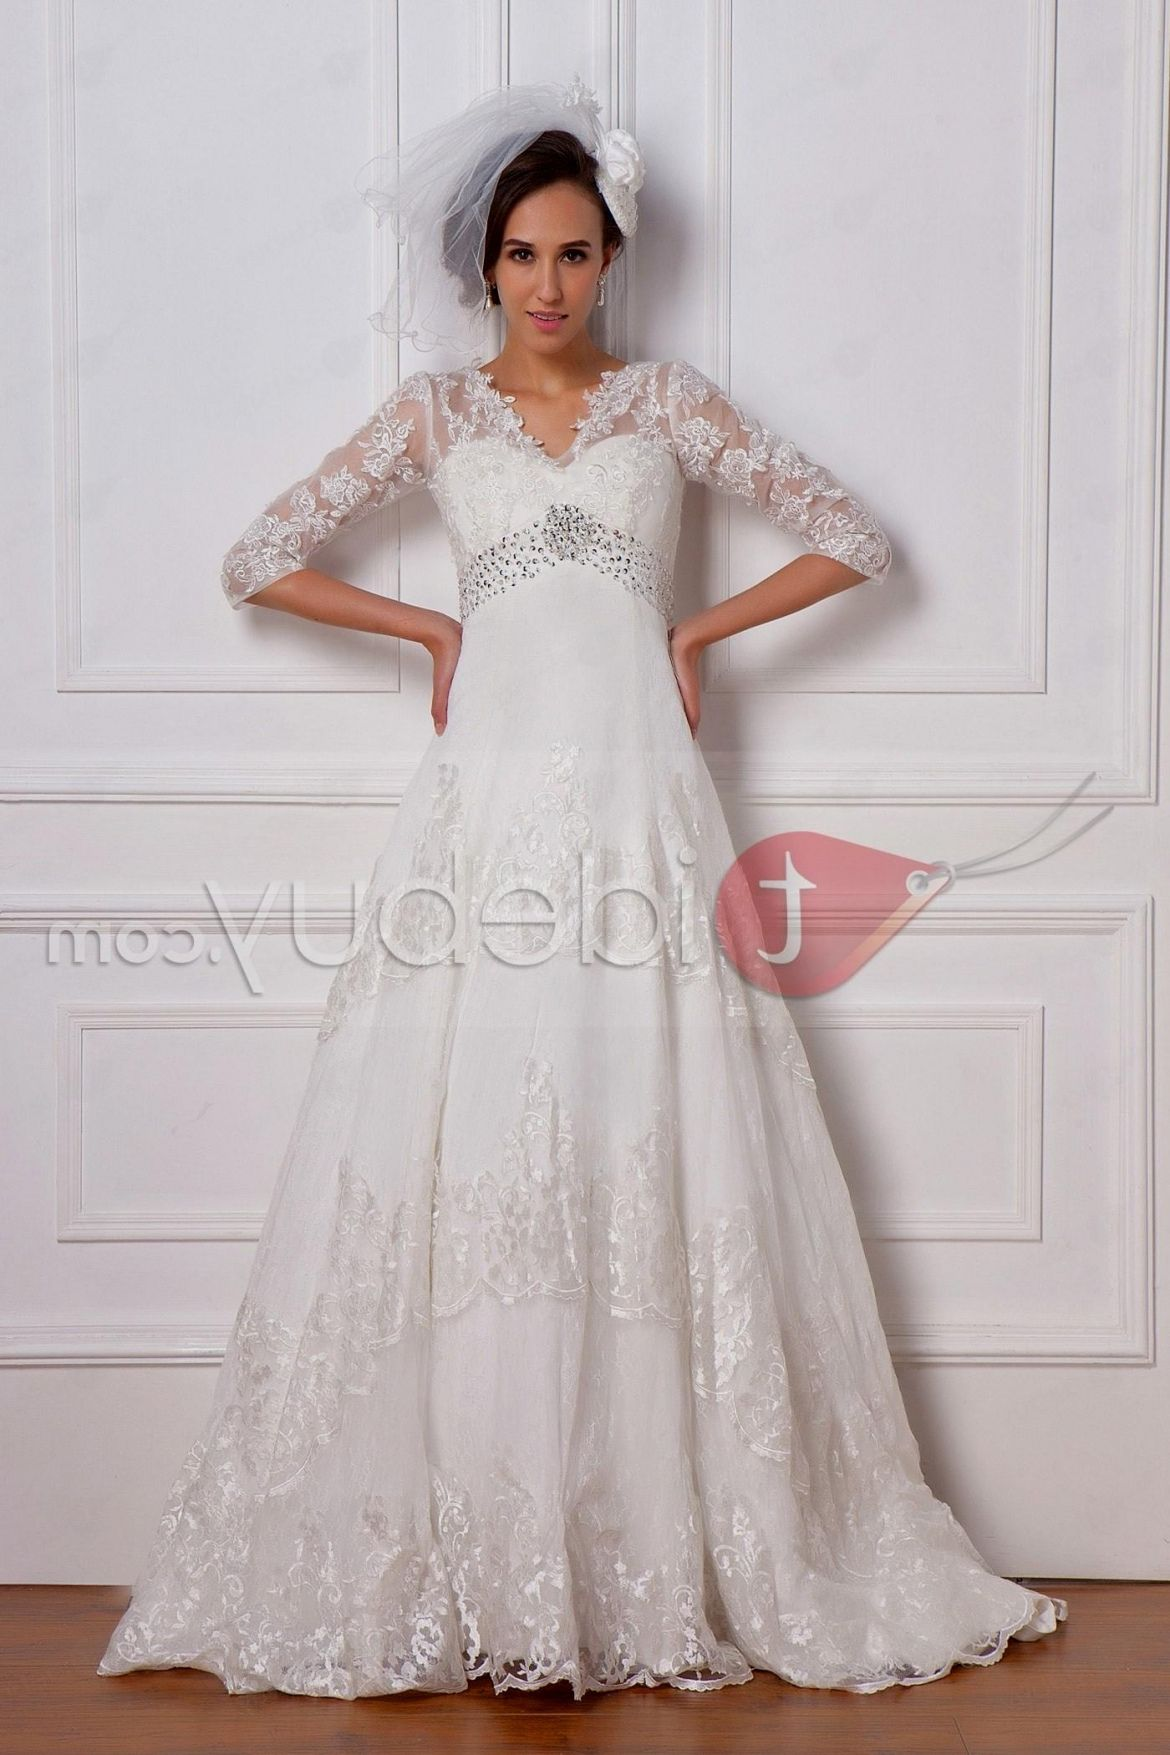 Wedding dress for pear shaped   Size  Wedding Dress Measurements  Best Wedding Dress for Pear